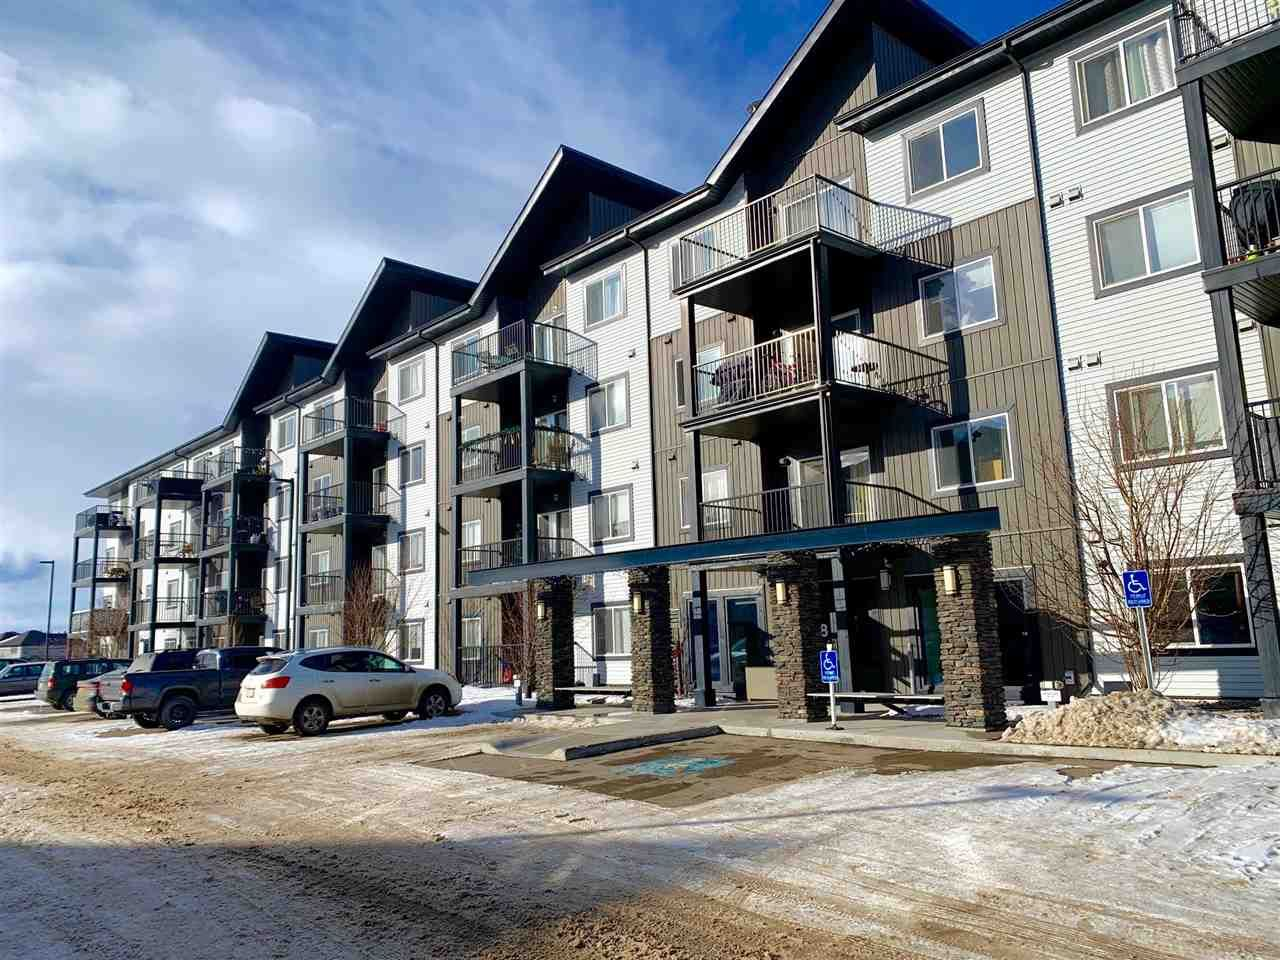 Main Photo: 417 508 ALBANY Way in Edmonton: Zone 27 Condo for sale : MLS®# E4229451